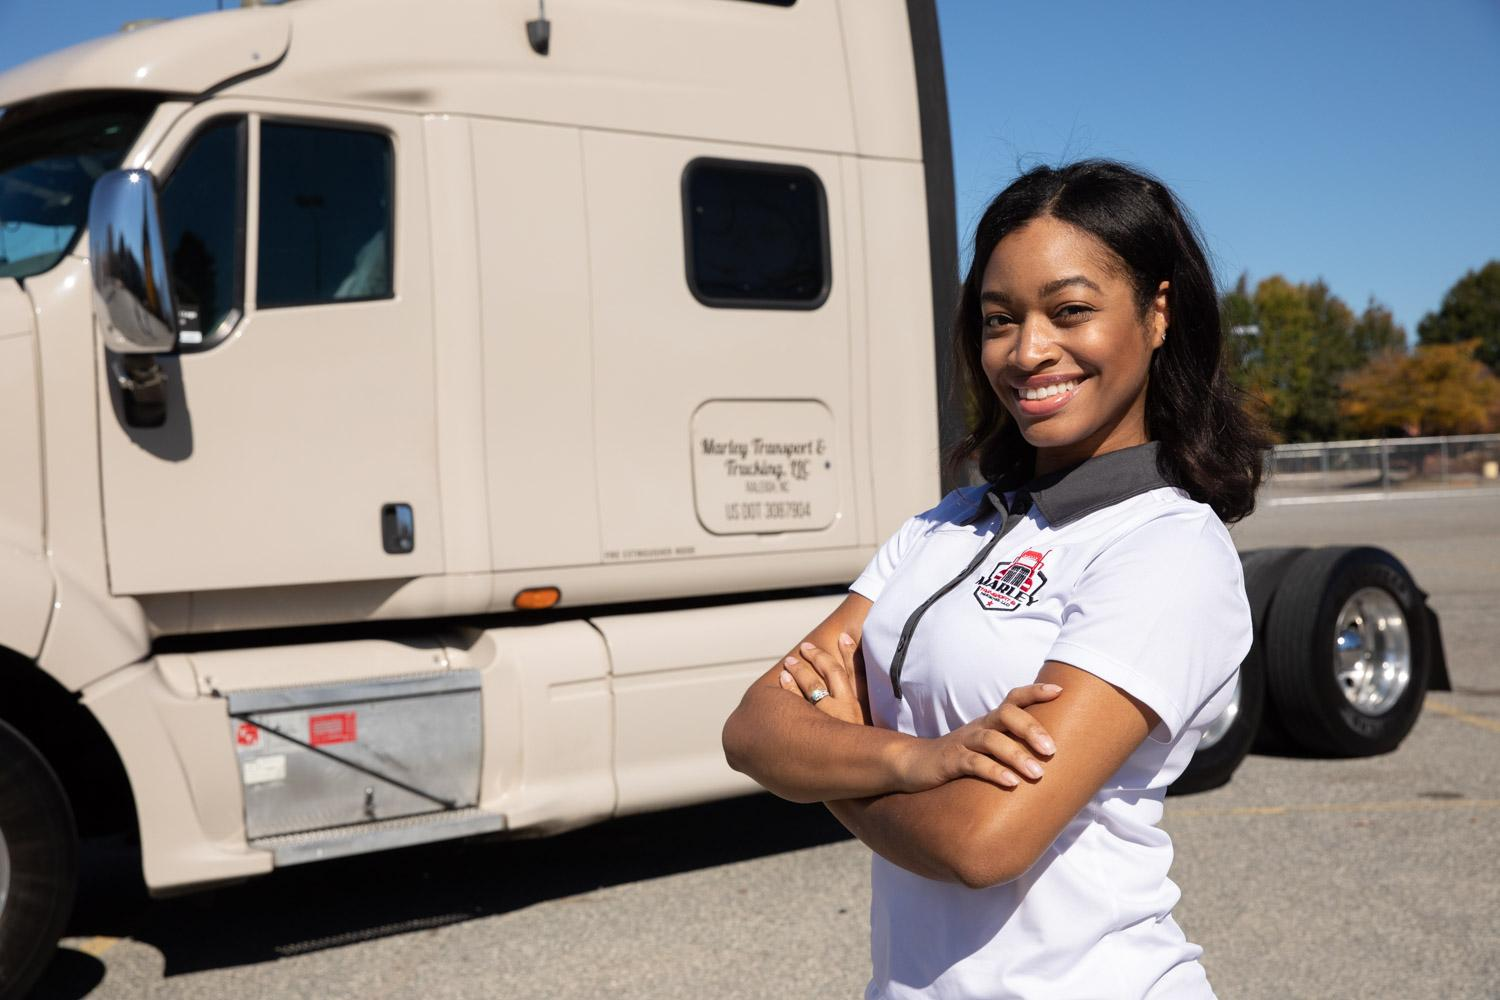 A loan through the Wisdom Fund helped Shavon Marley, owner and founder of Marley Transport & Trucking in Raleigh, North Carolina, grow her business.